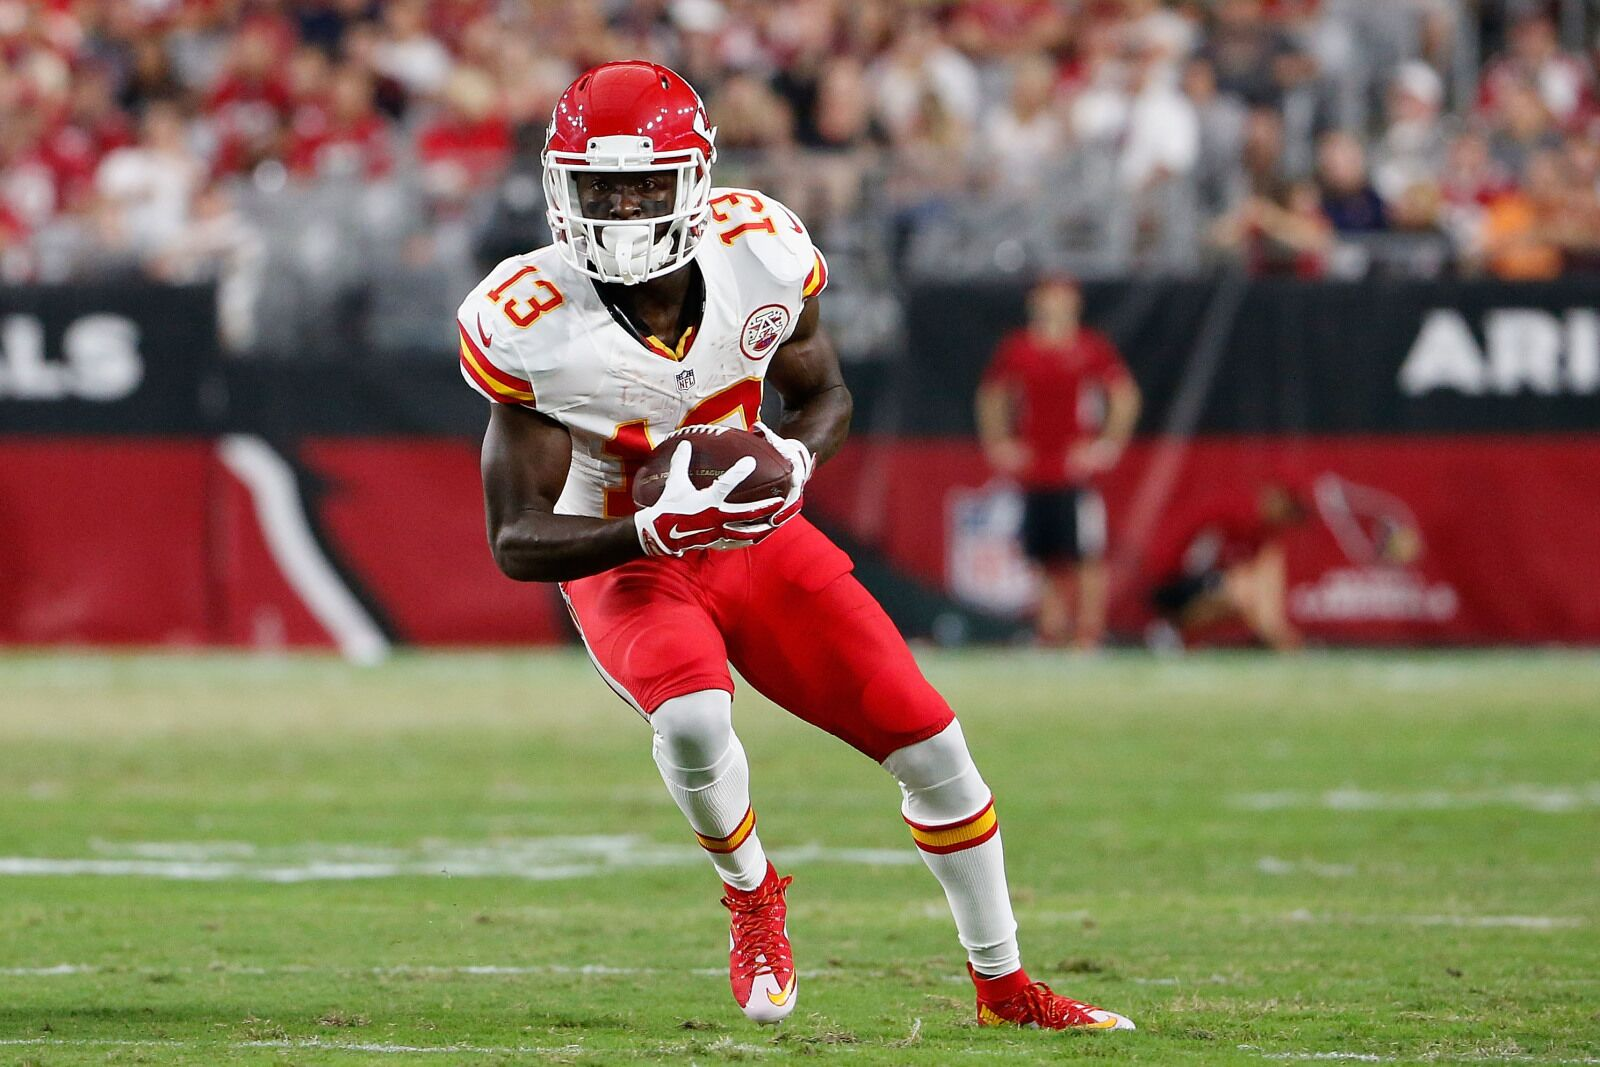 Kansas City Chiefs: De'Anthony Thomas not a lock to make roster